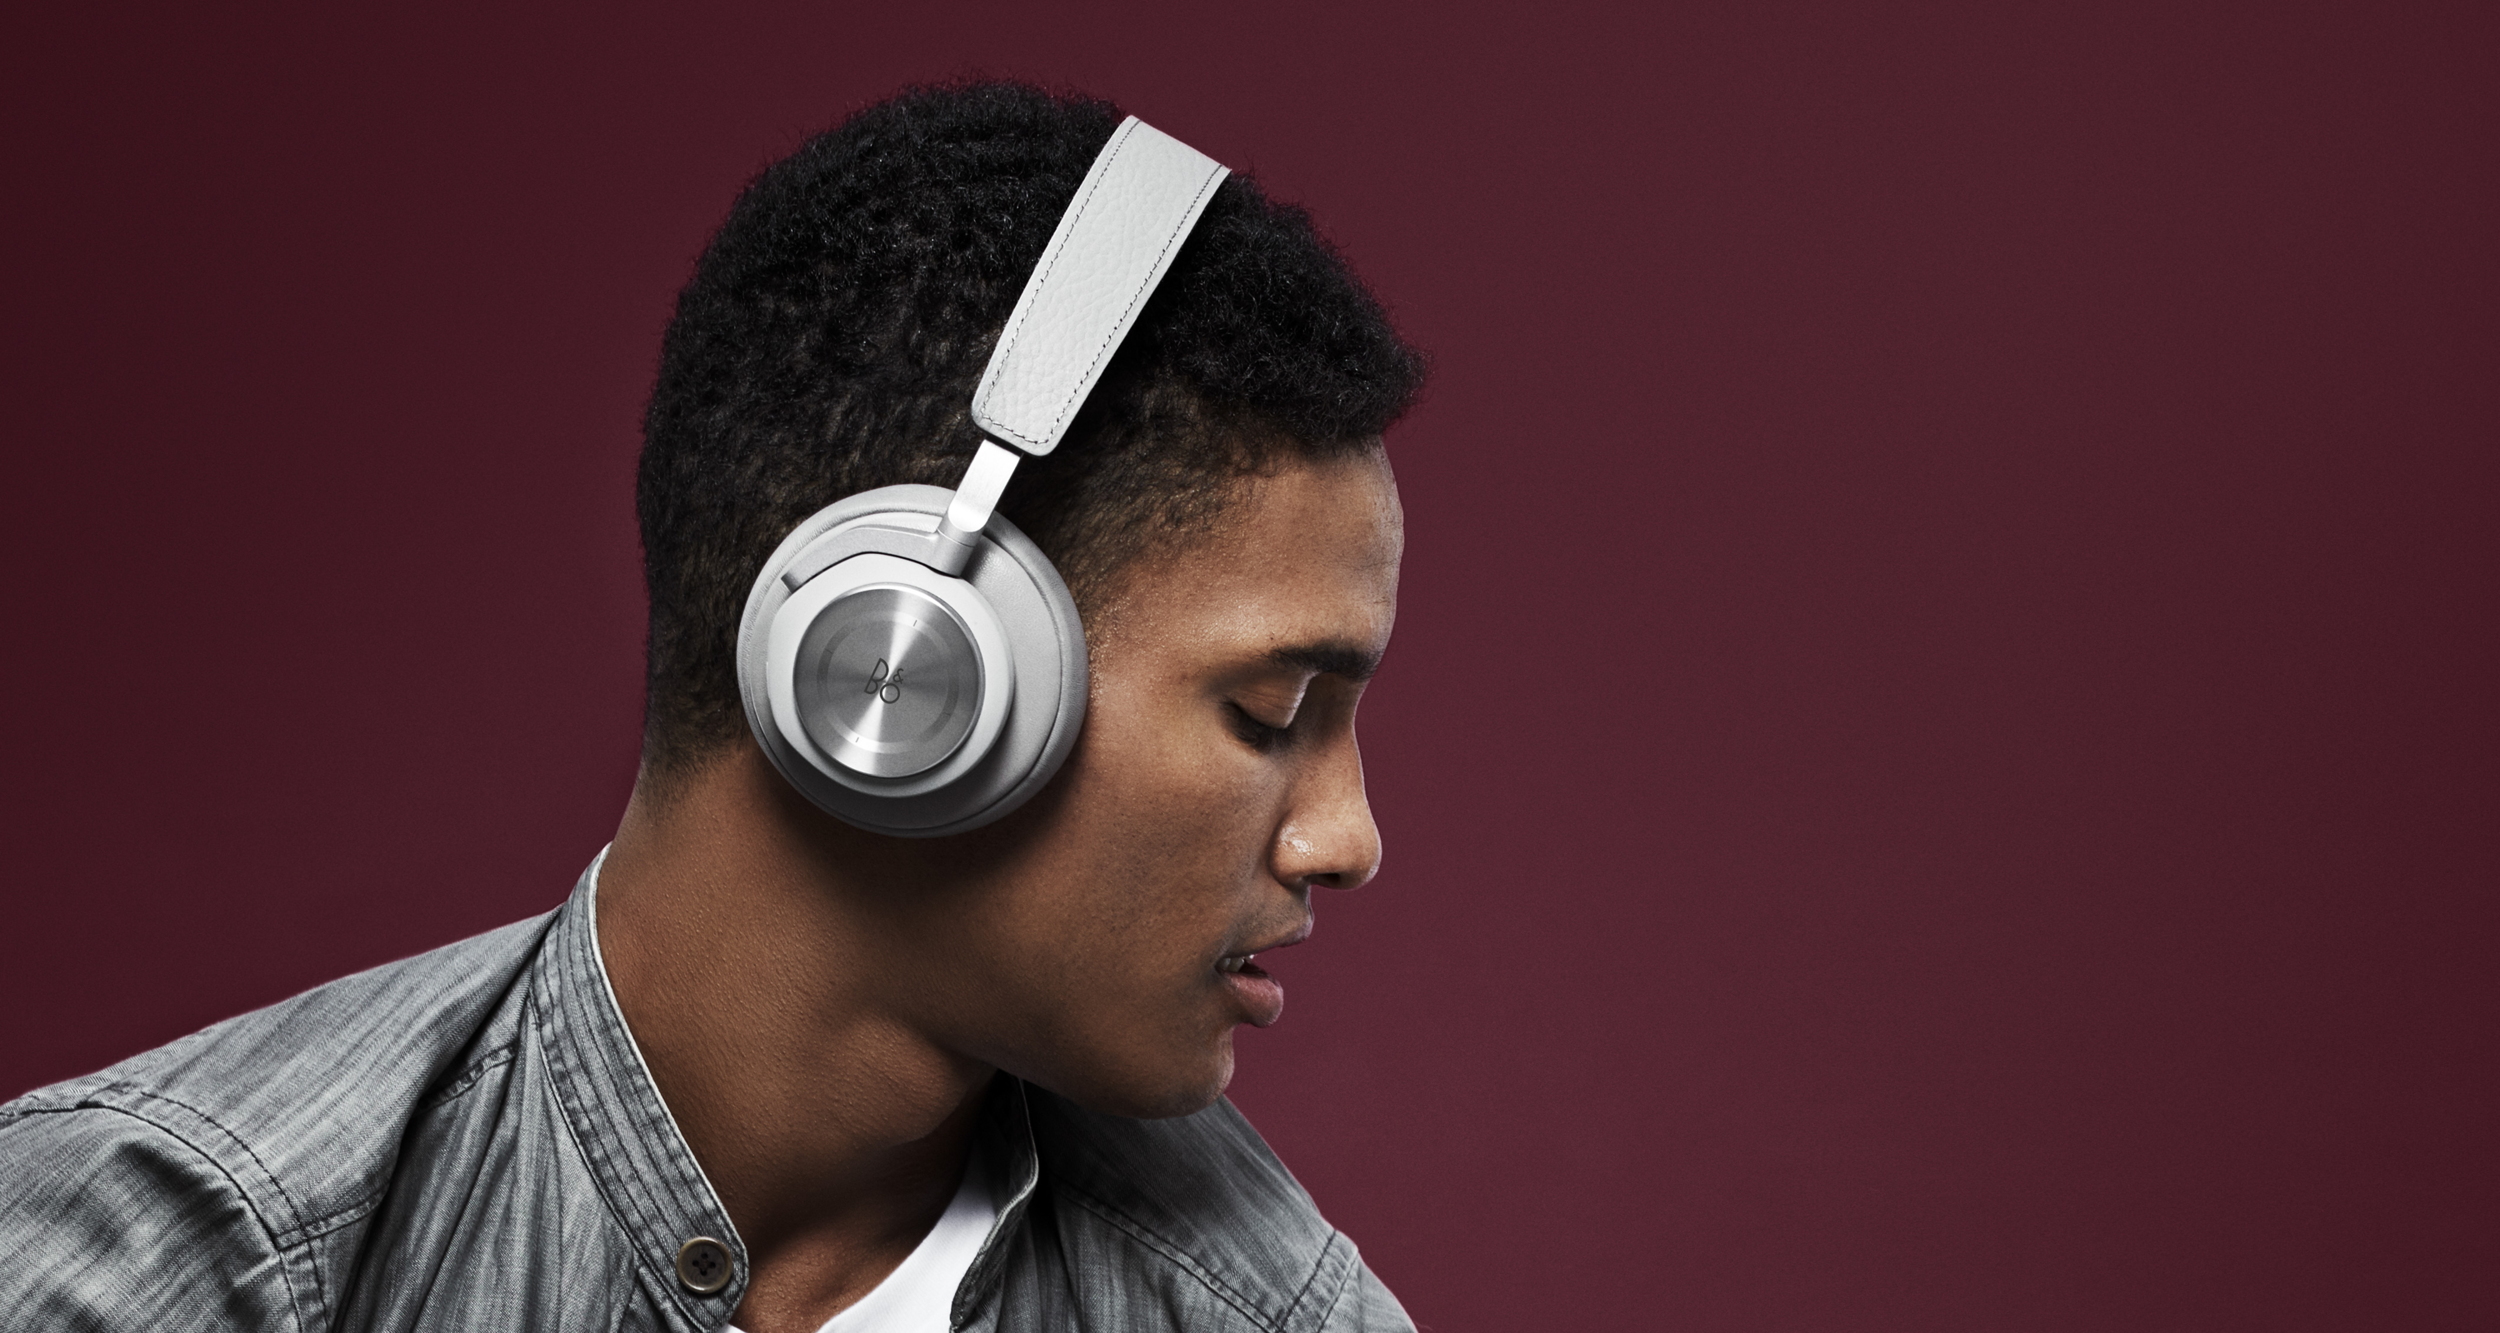 Beoplay_case_8.png